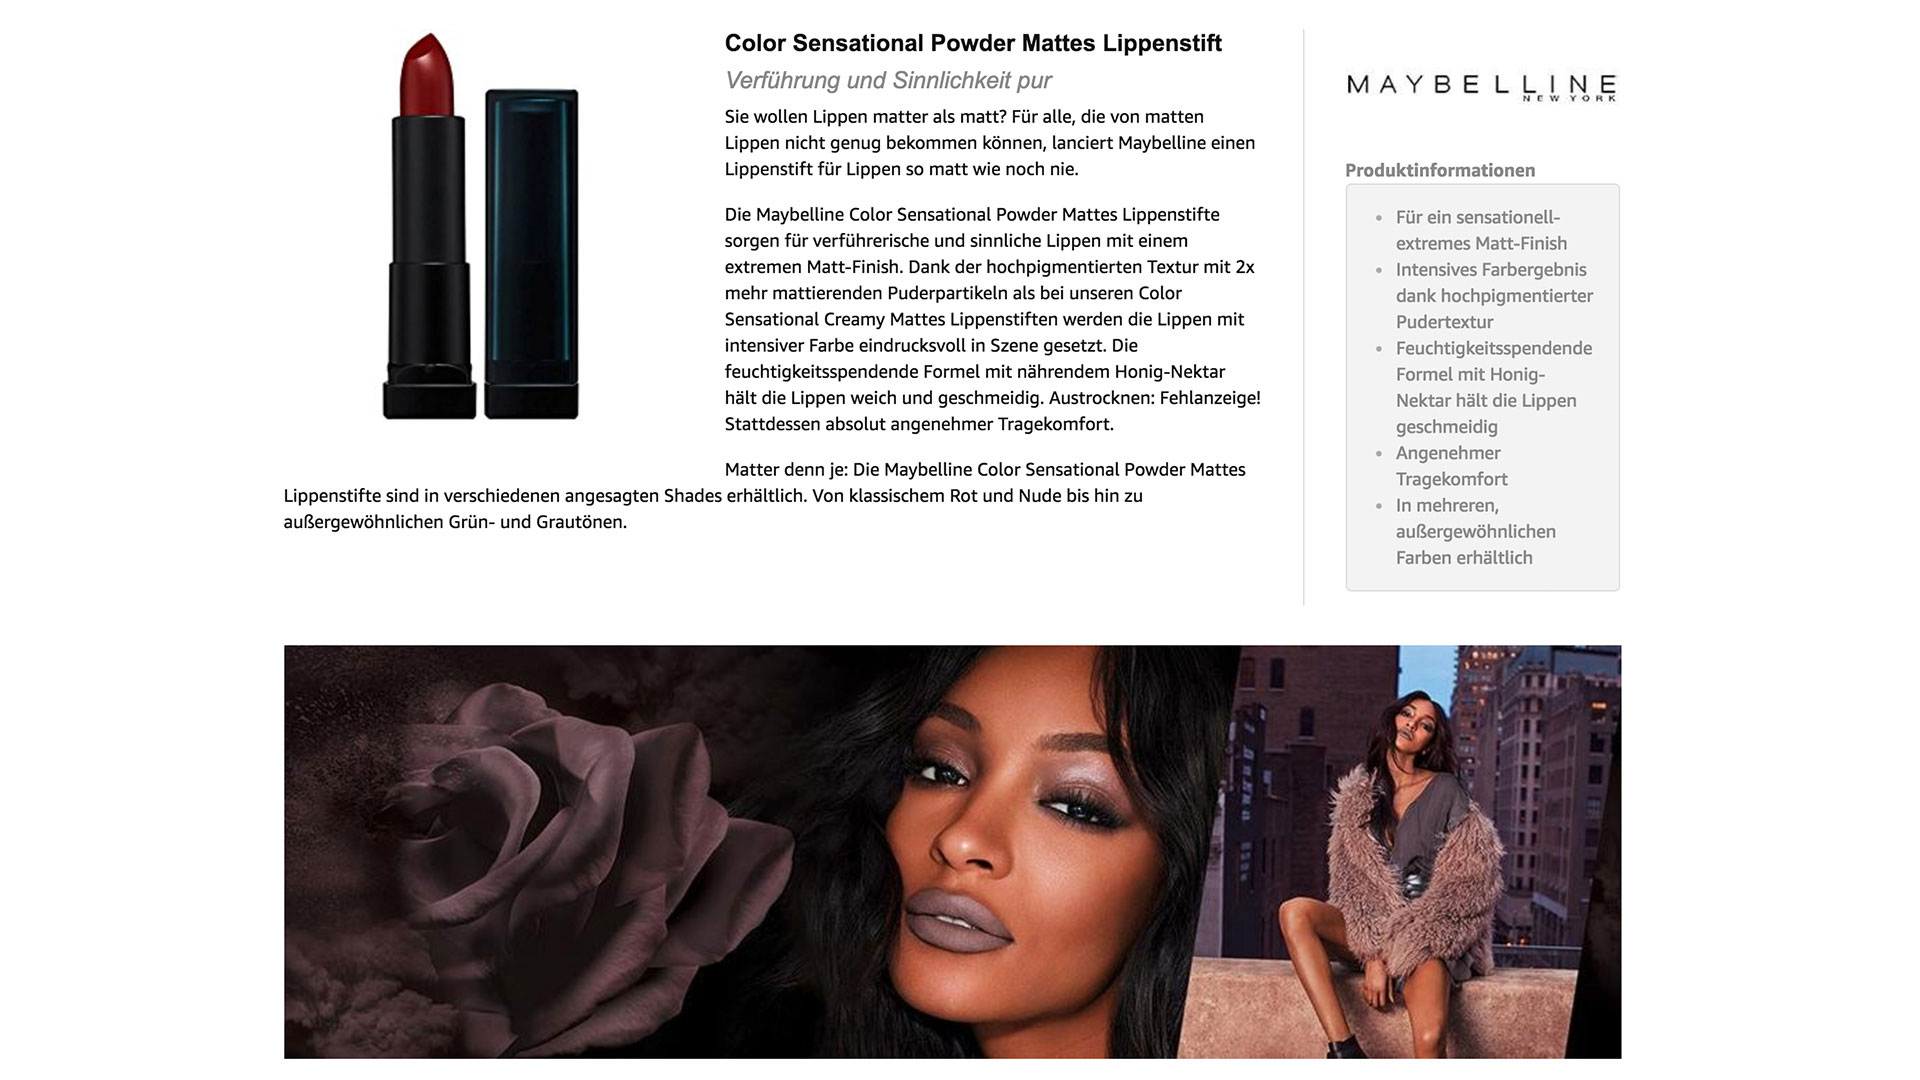 L'Oréal Retailer Product Content Amazon A+